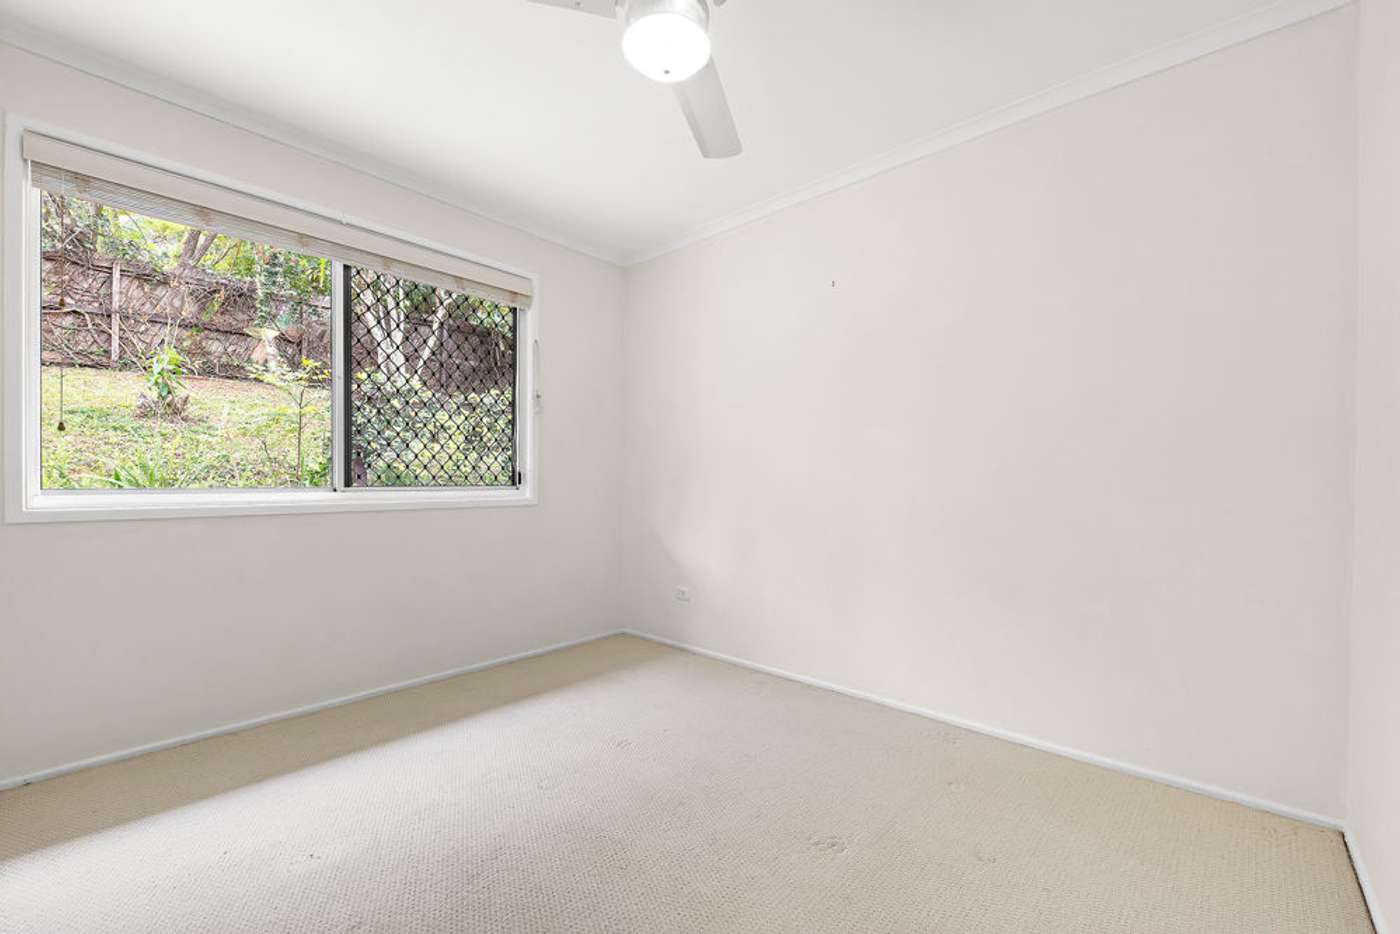 Sixth view of Homely house listing, 40 Beacon Drive, Cornubia QLD 4130